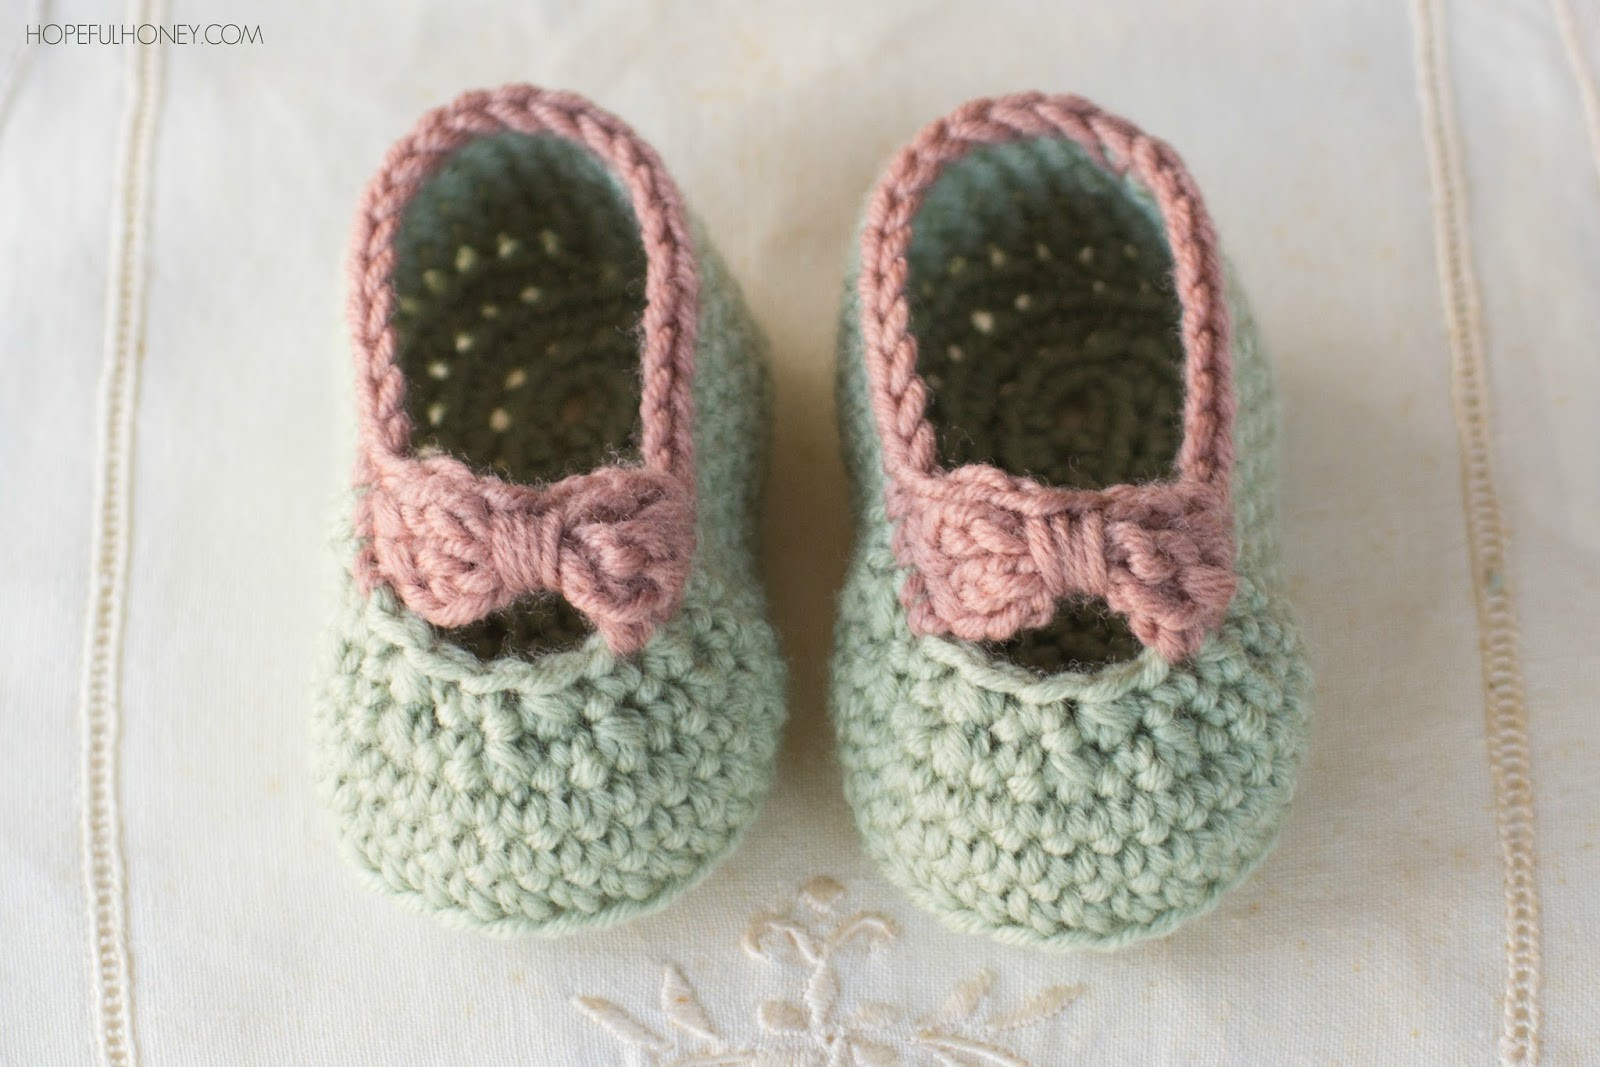 Best Of Crochet Baby Slippers Pattern Free Free Knitting and Crochet Patterns Of Marvelous 44 Ideas Free Knitting and Crochet Patterns